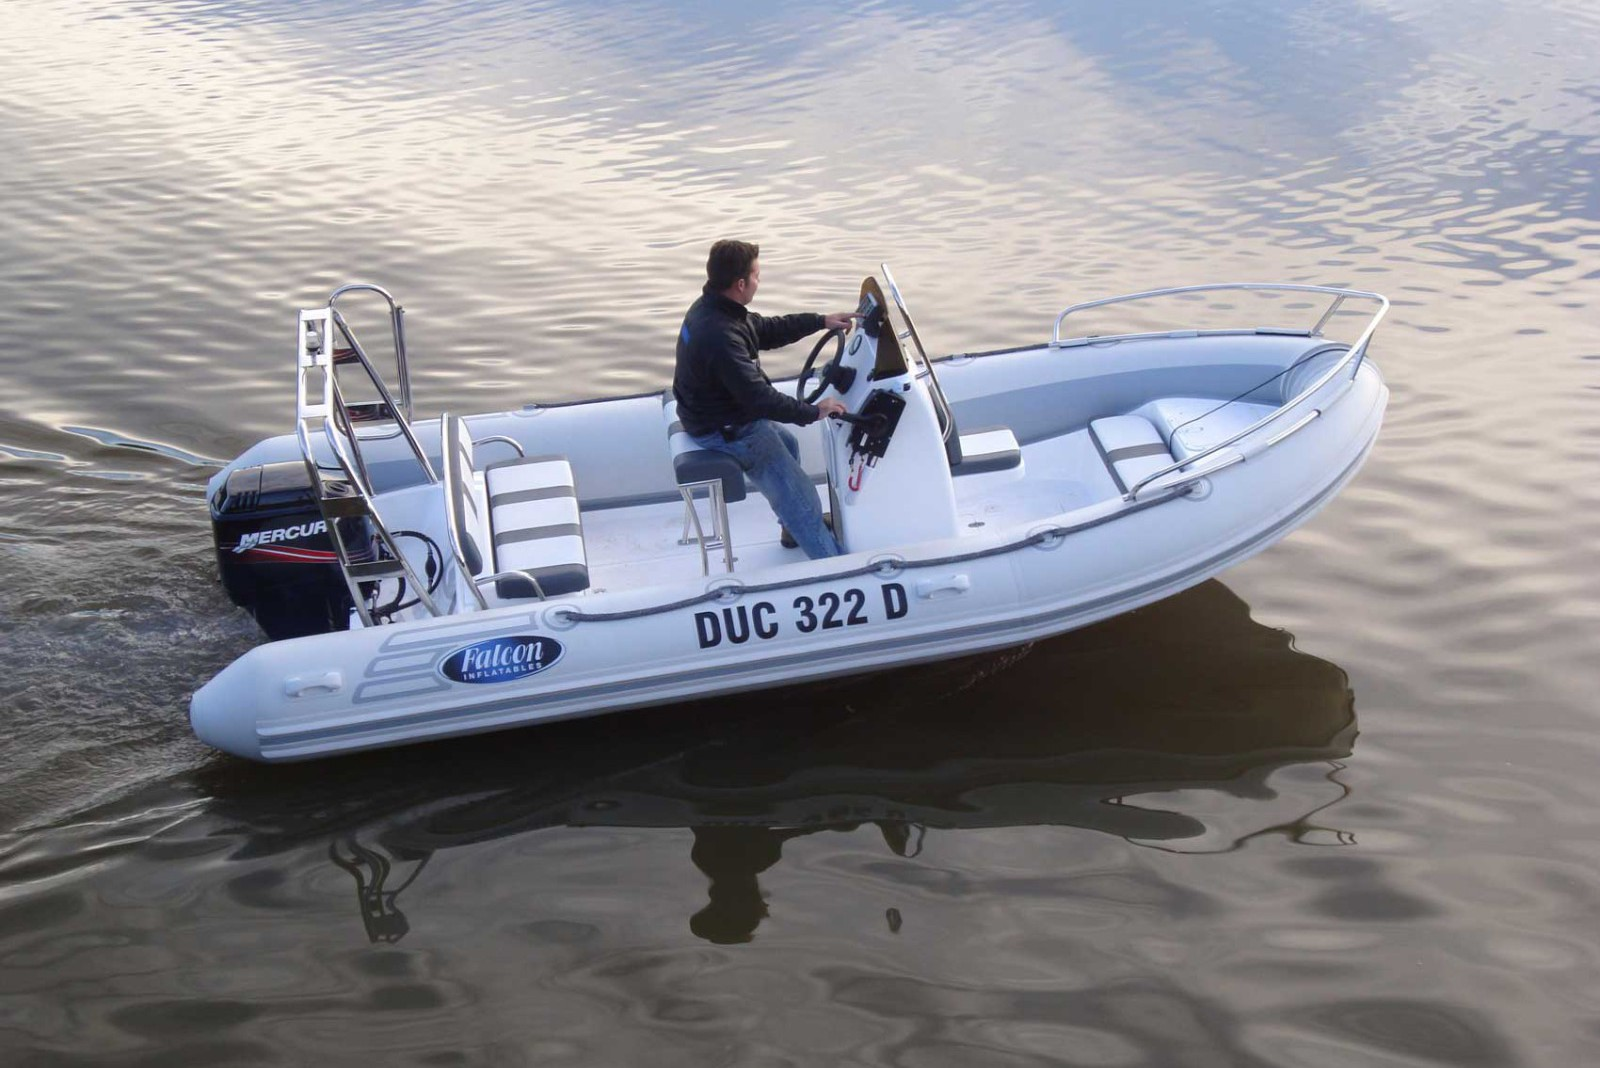 Falcon 520 Rigid Inflatable Boat